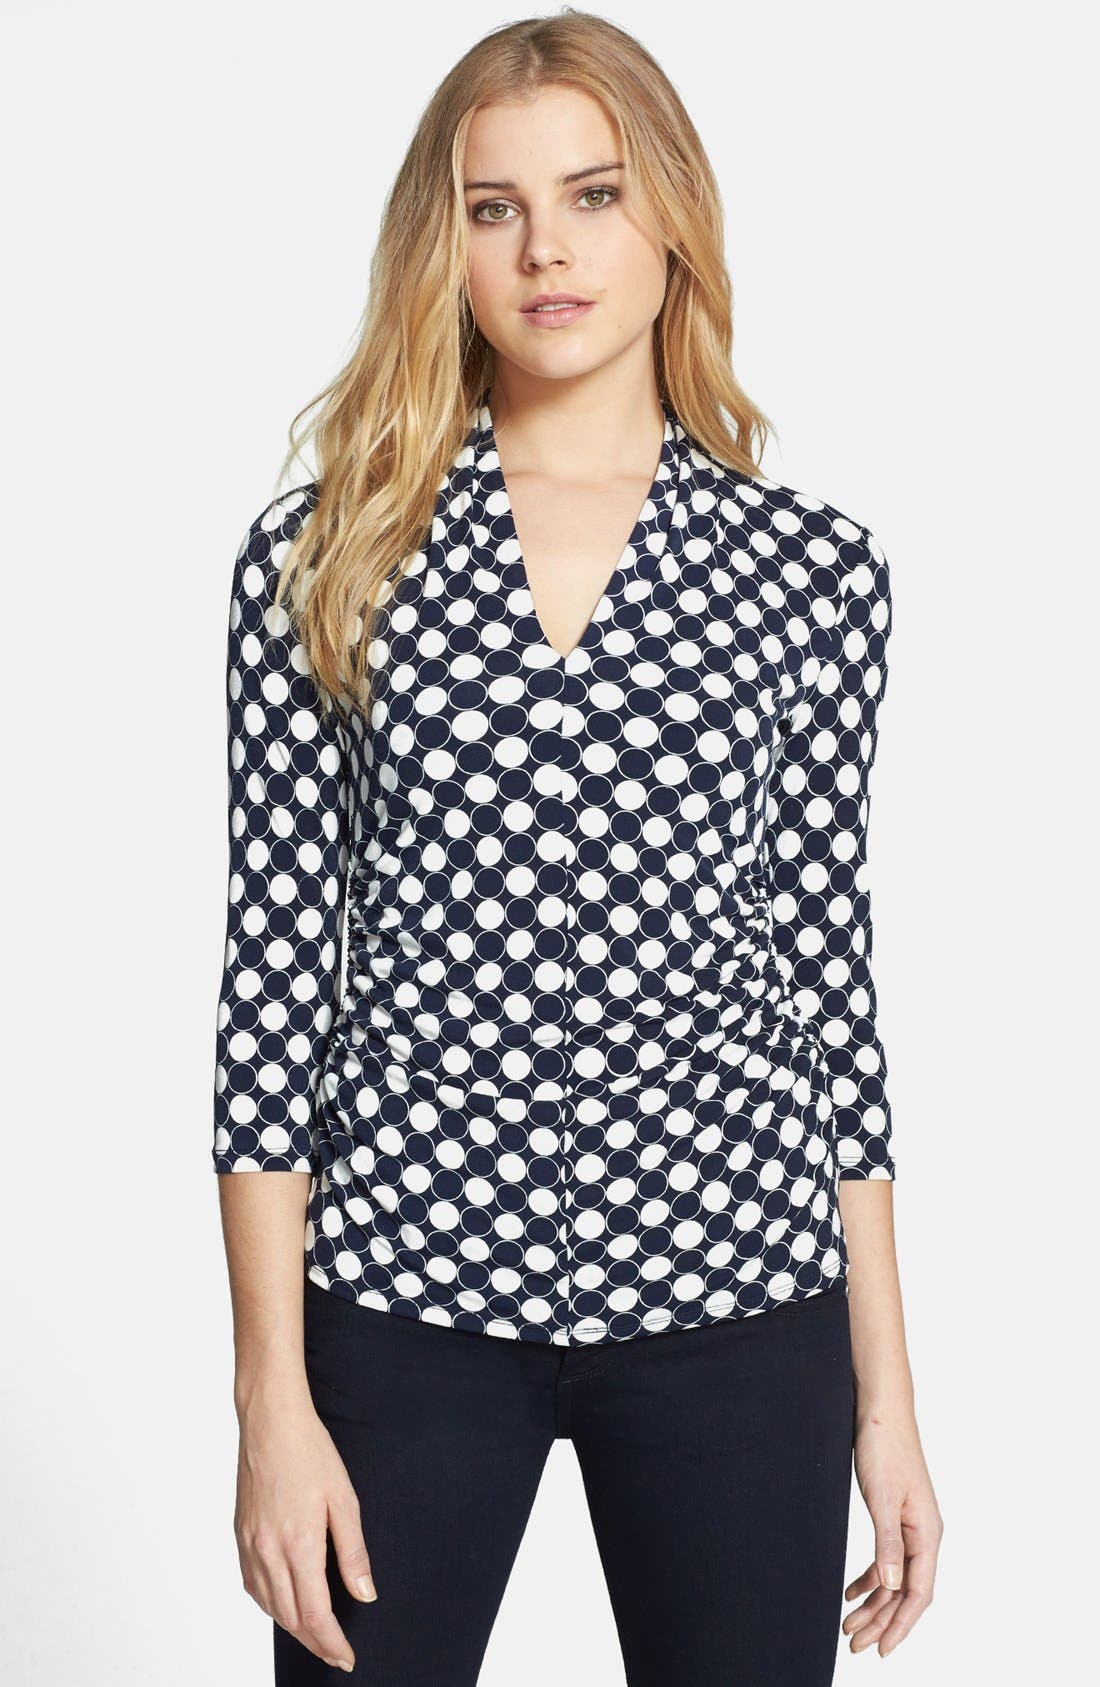 Alternate Image 1 Selected - Vince Camuto 'Retro Dots' V-Neck Top (Regular & Petite)